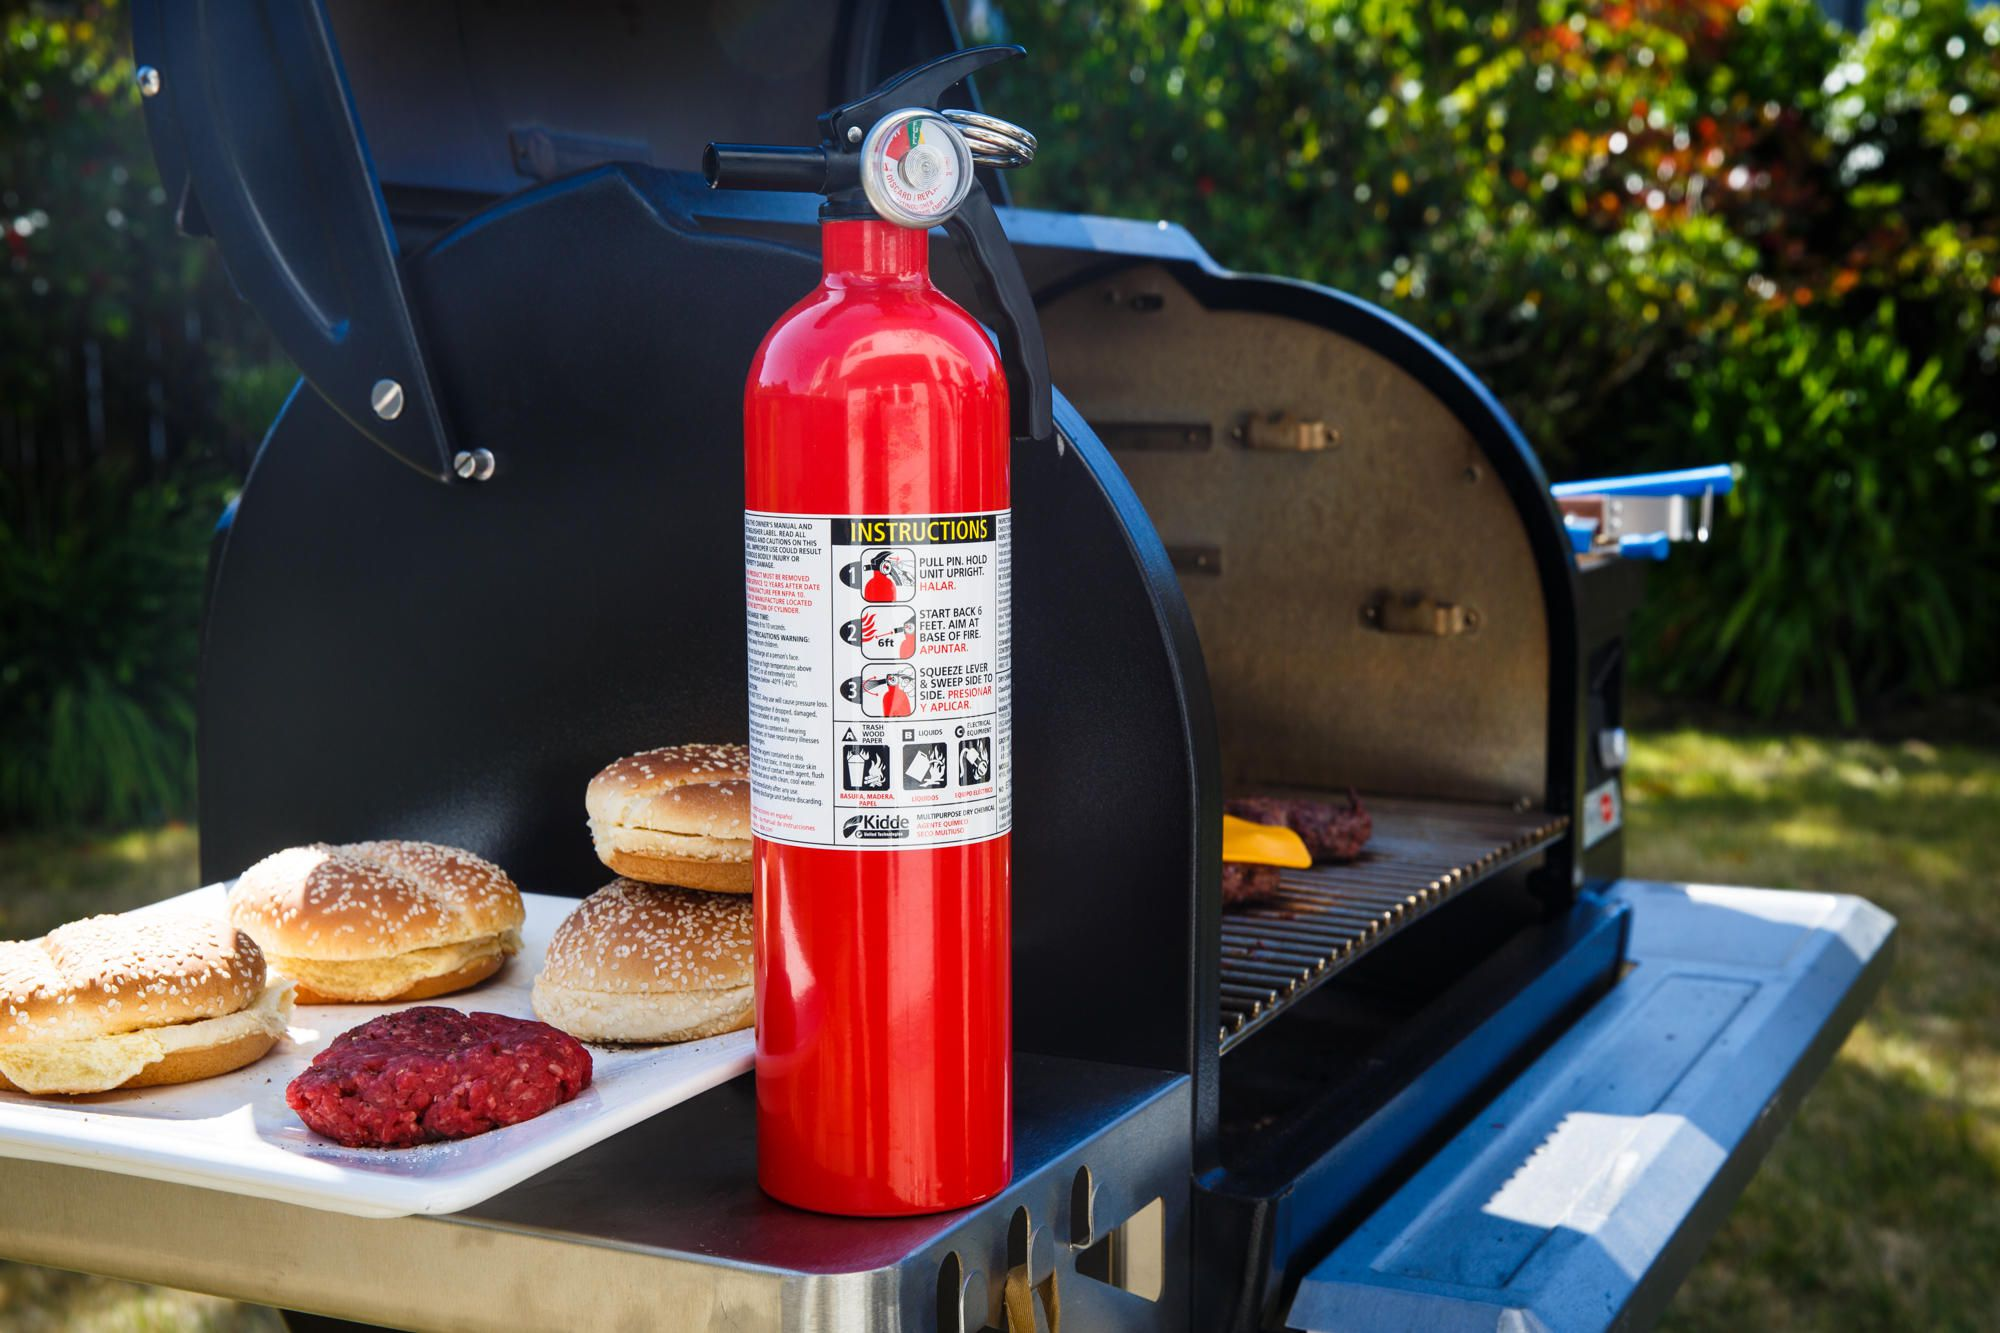 grilling-4x3-cnet-smart-home-9344-026